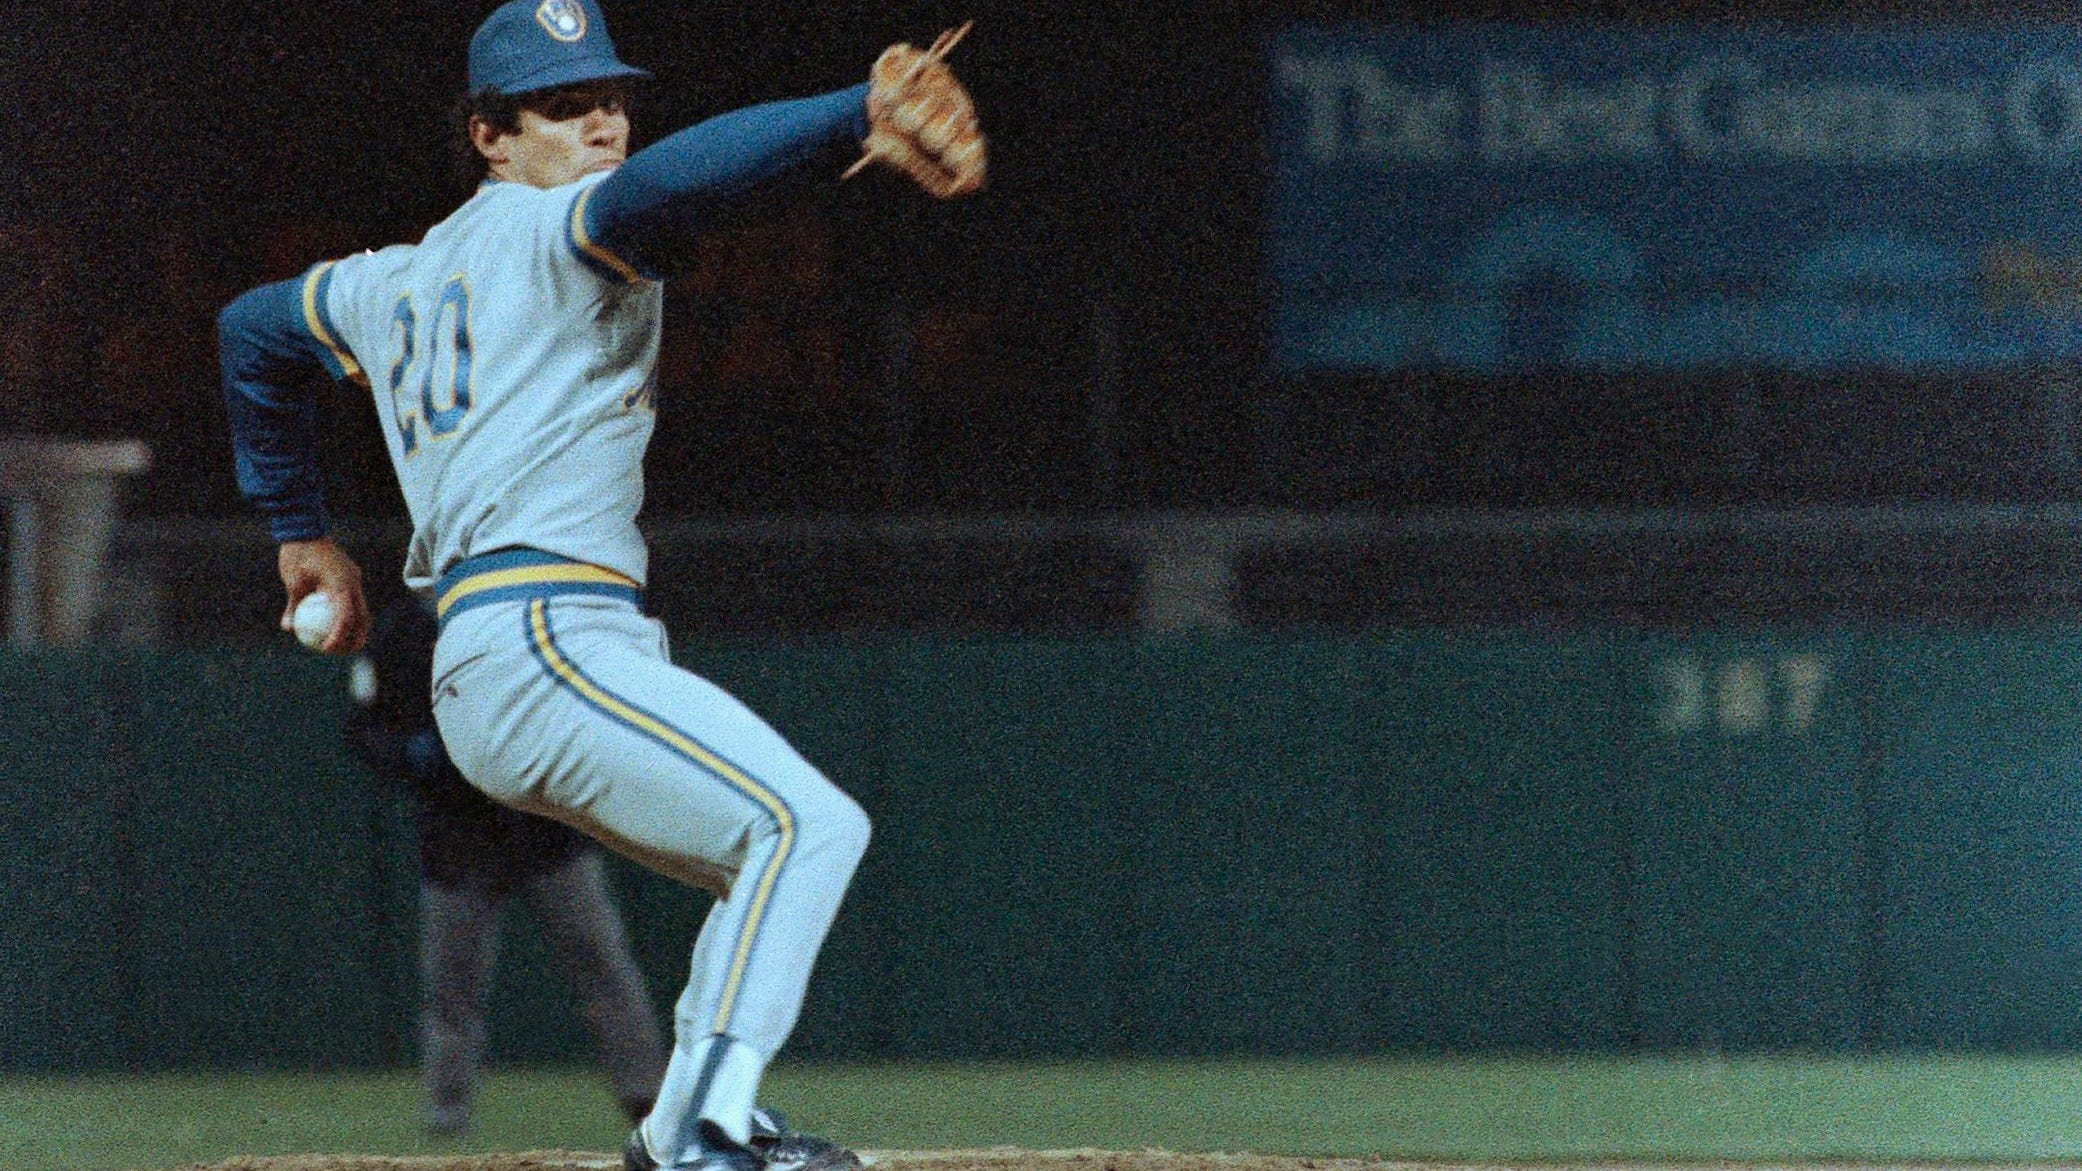 Milwaukee Brewers pitcher Juan Nieves throws the ball toward home plate en route to pitching a no-hitter against the Baltimore Orioles in Baltimore on April 15, 1987.